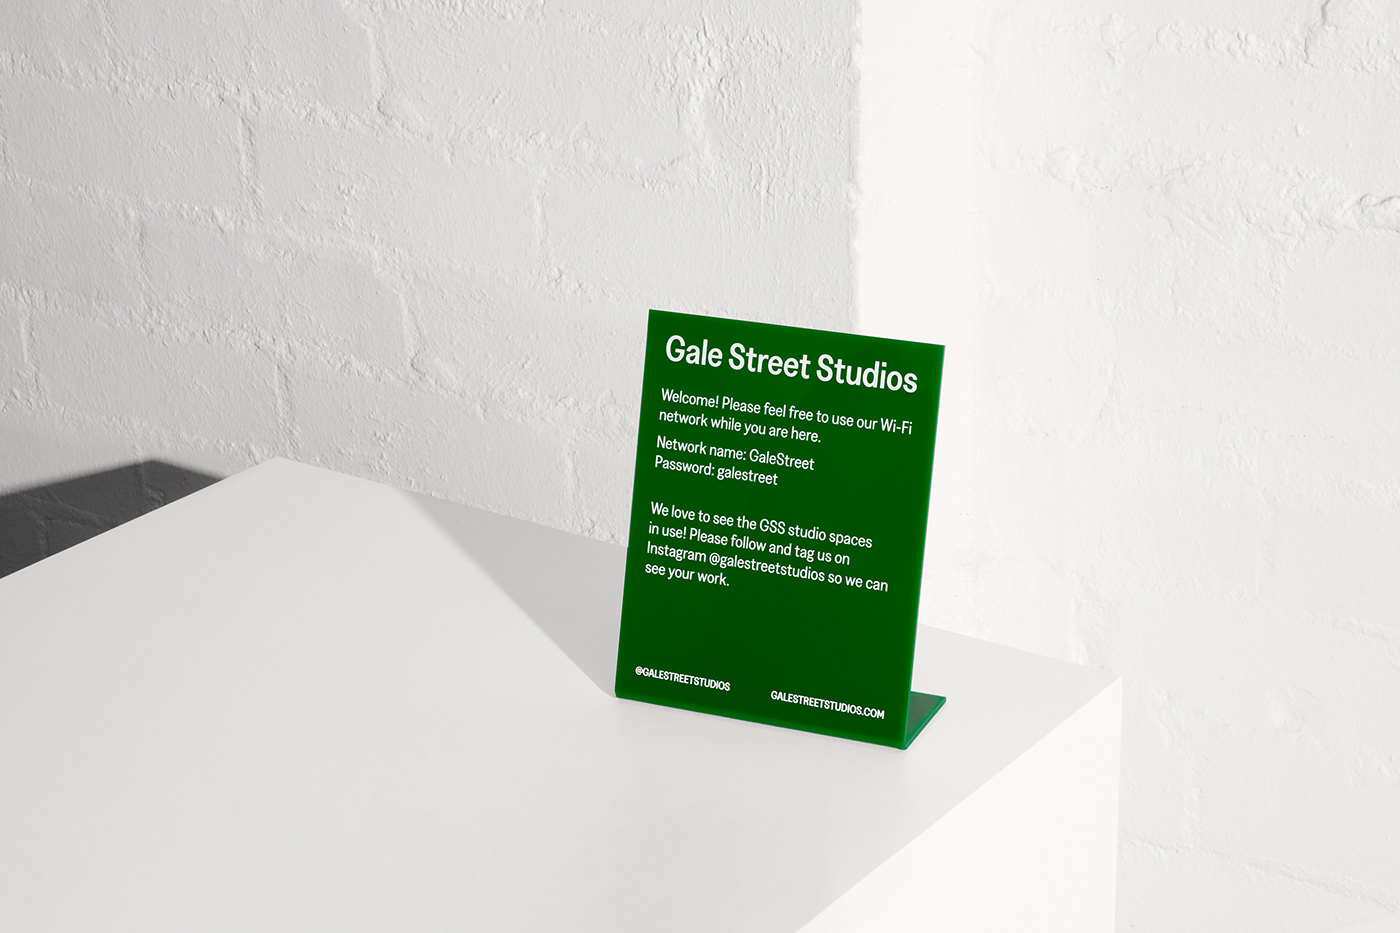 approachable community green Independent Photography  postcard Signage wayfinding